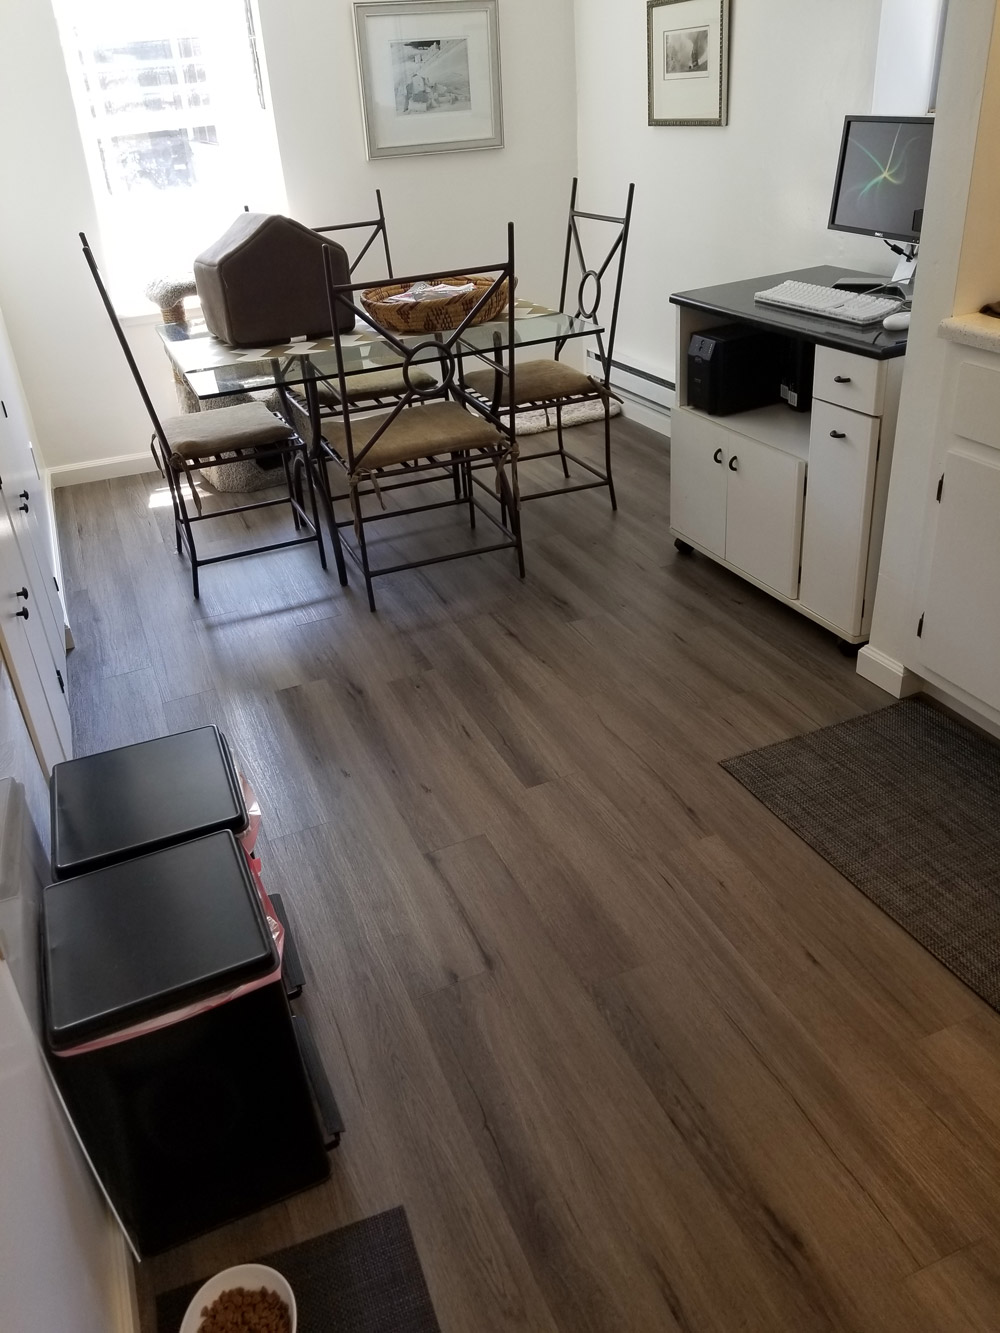 Palo Alto, office/ kitchen dinette: Install water-proof  LVT      (luxury vinyl tile) over existing  hardwood flooring.                   250 square feet.